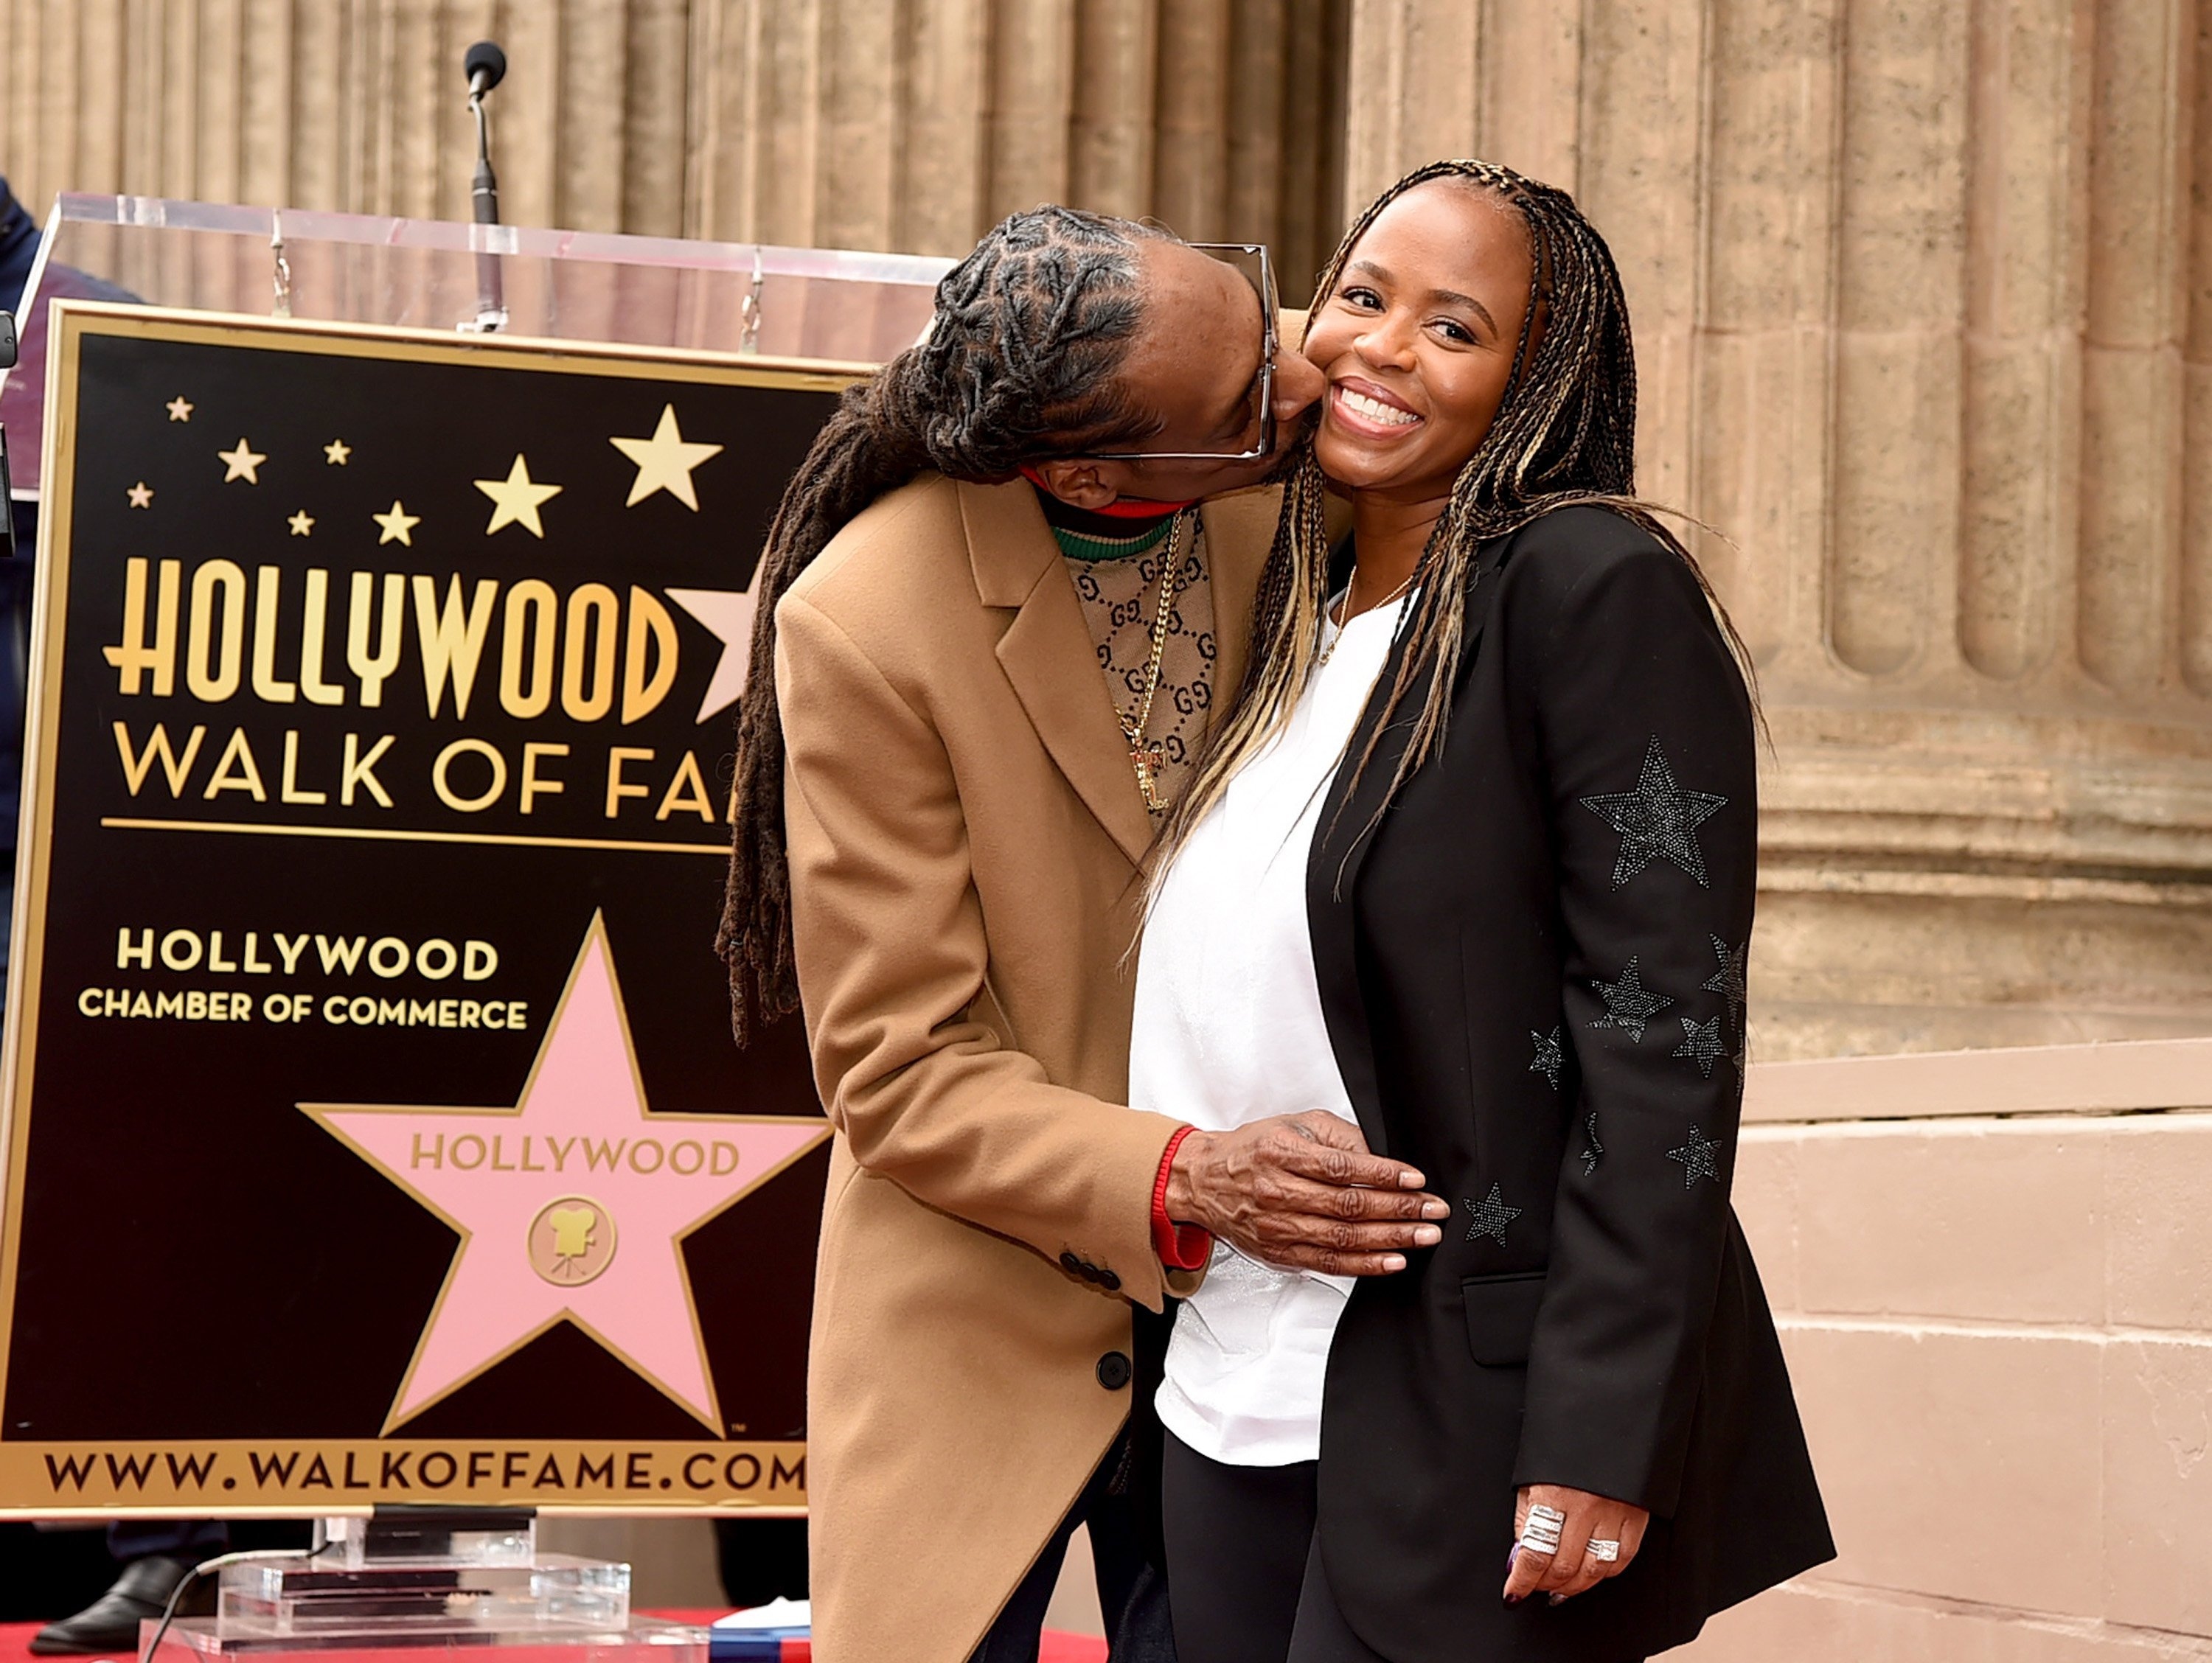 Snoop Dogg, with his wife Shante Broadus, as he is honored with a star on The Hollywood Walk of Fame on Nov. 19, 2018 | Photo: Getty Images